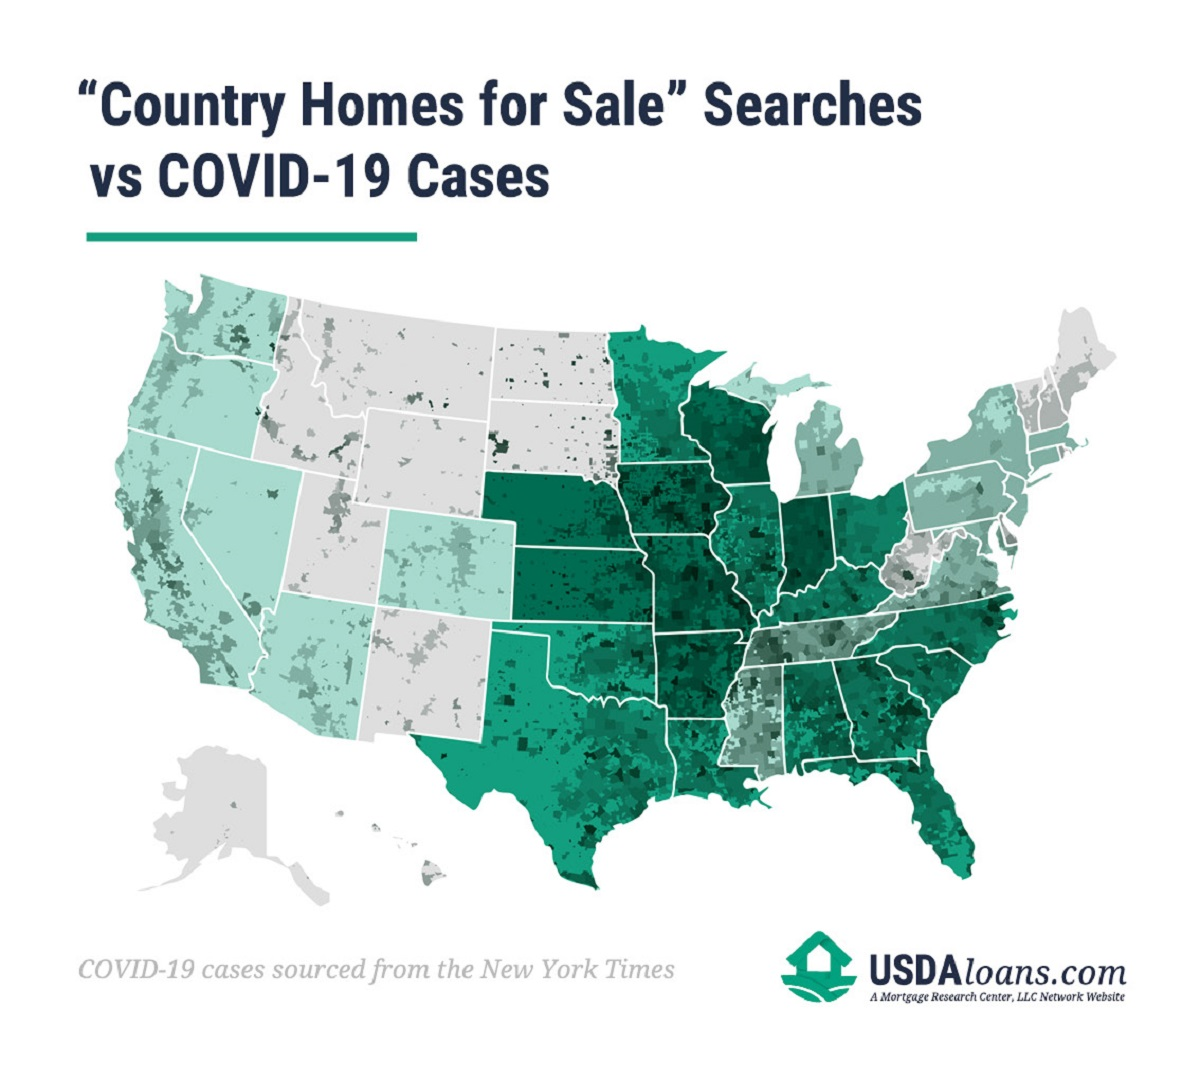 concentration of searches for country homes for sale vs COVID-19 cases graph